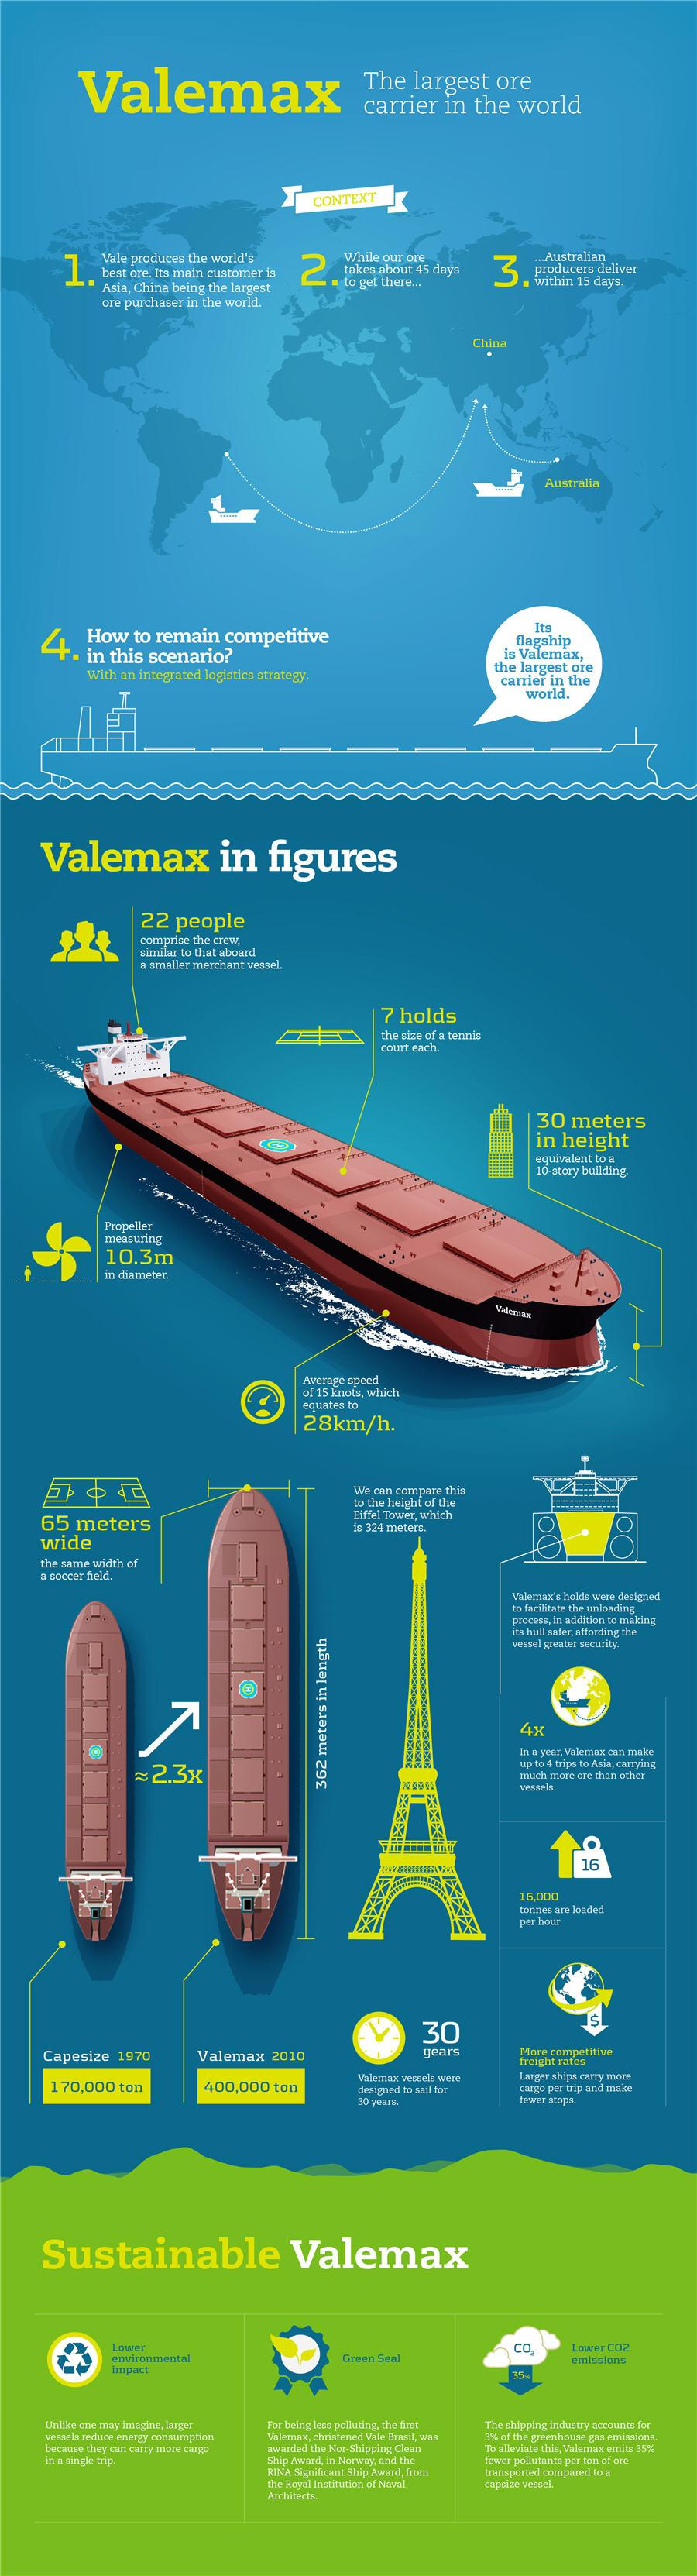 Infographic Valemax The Largest Ore Carrier in The World ...